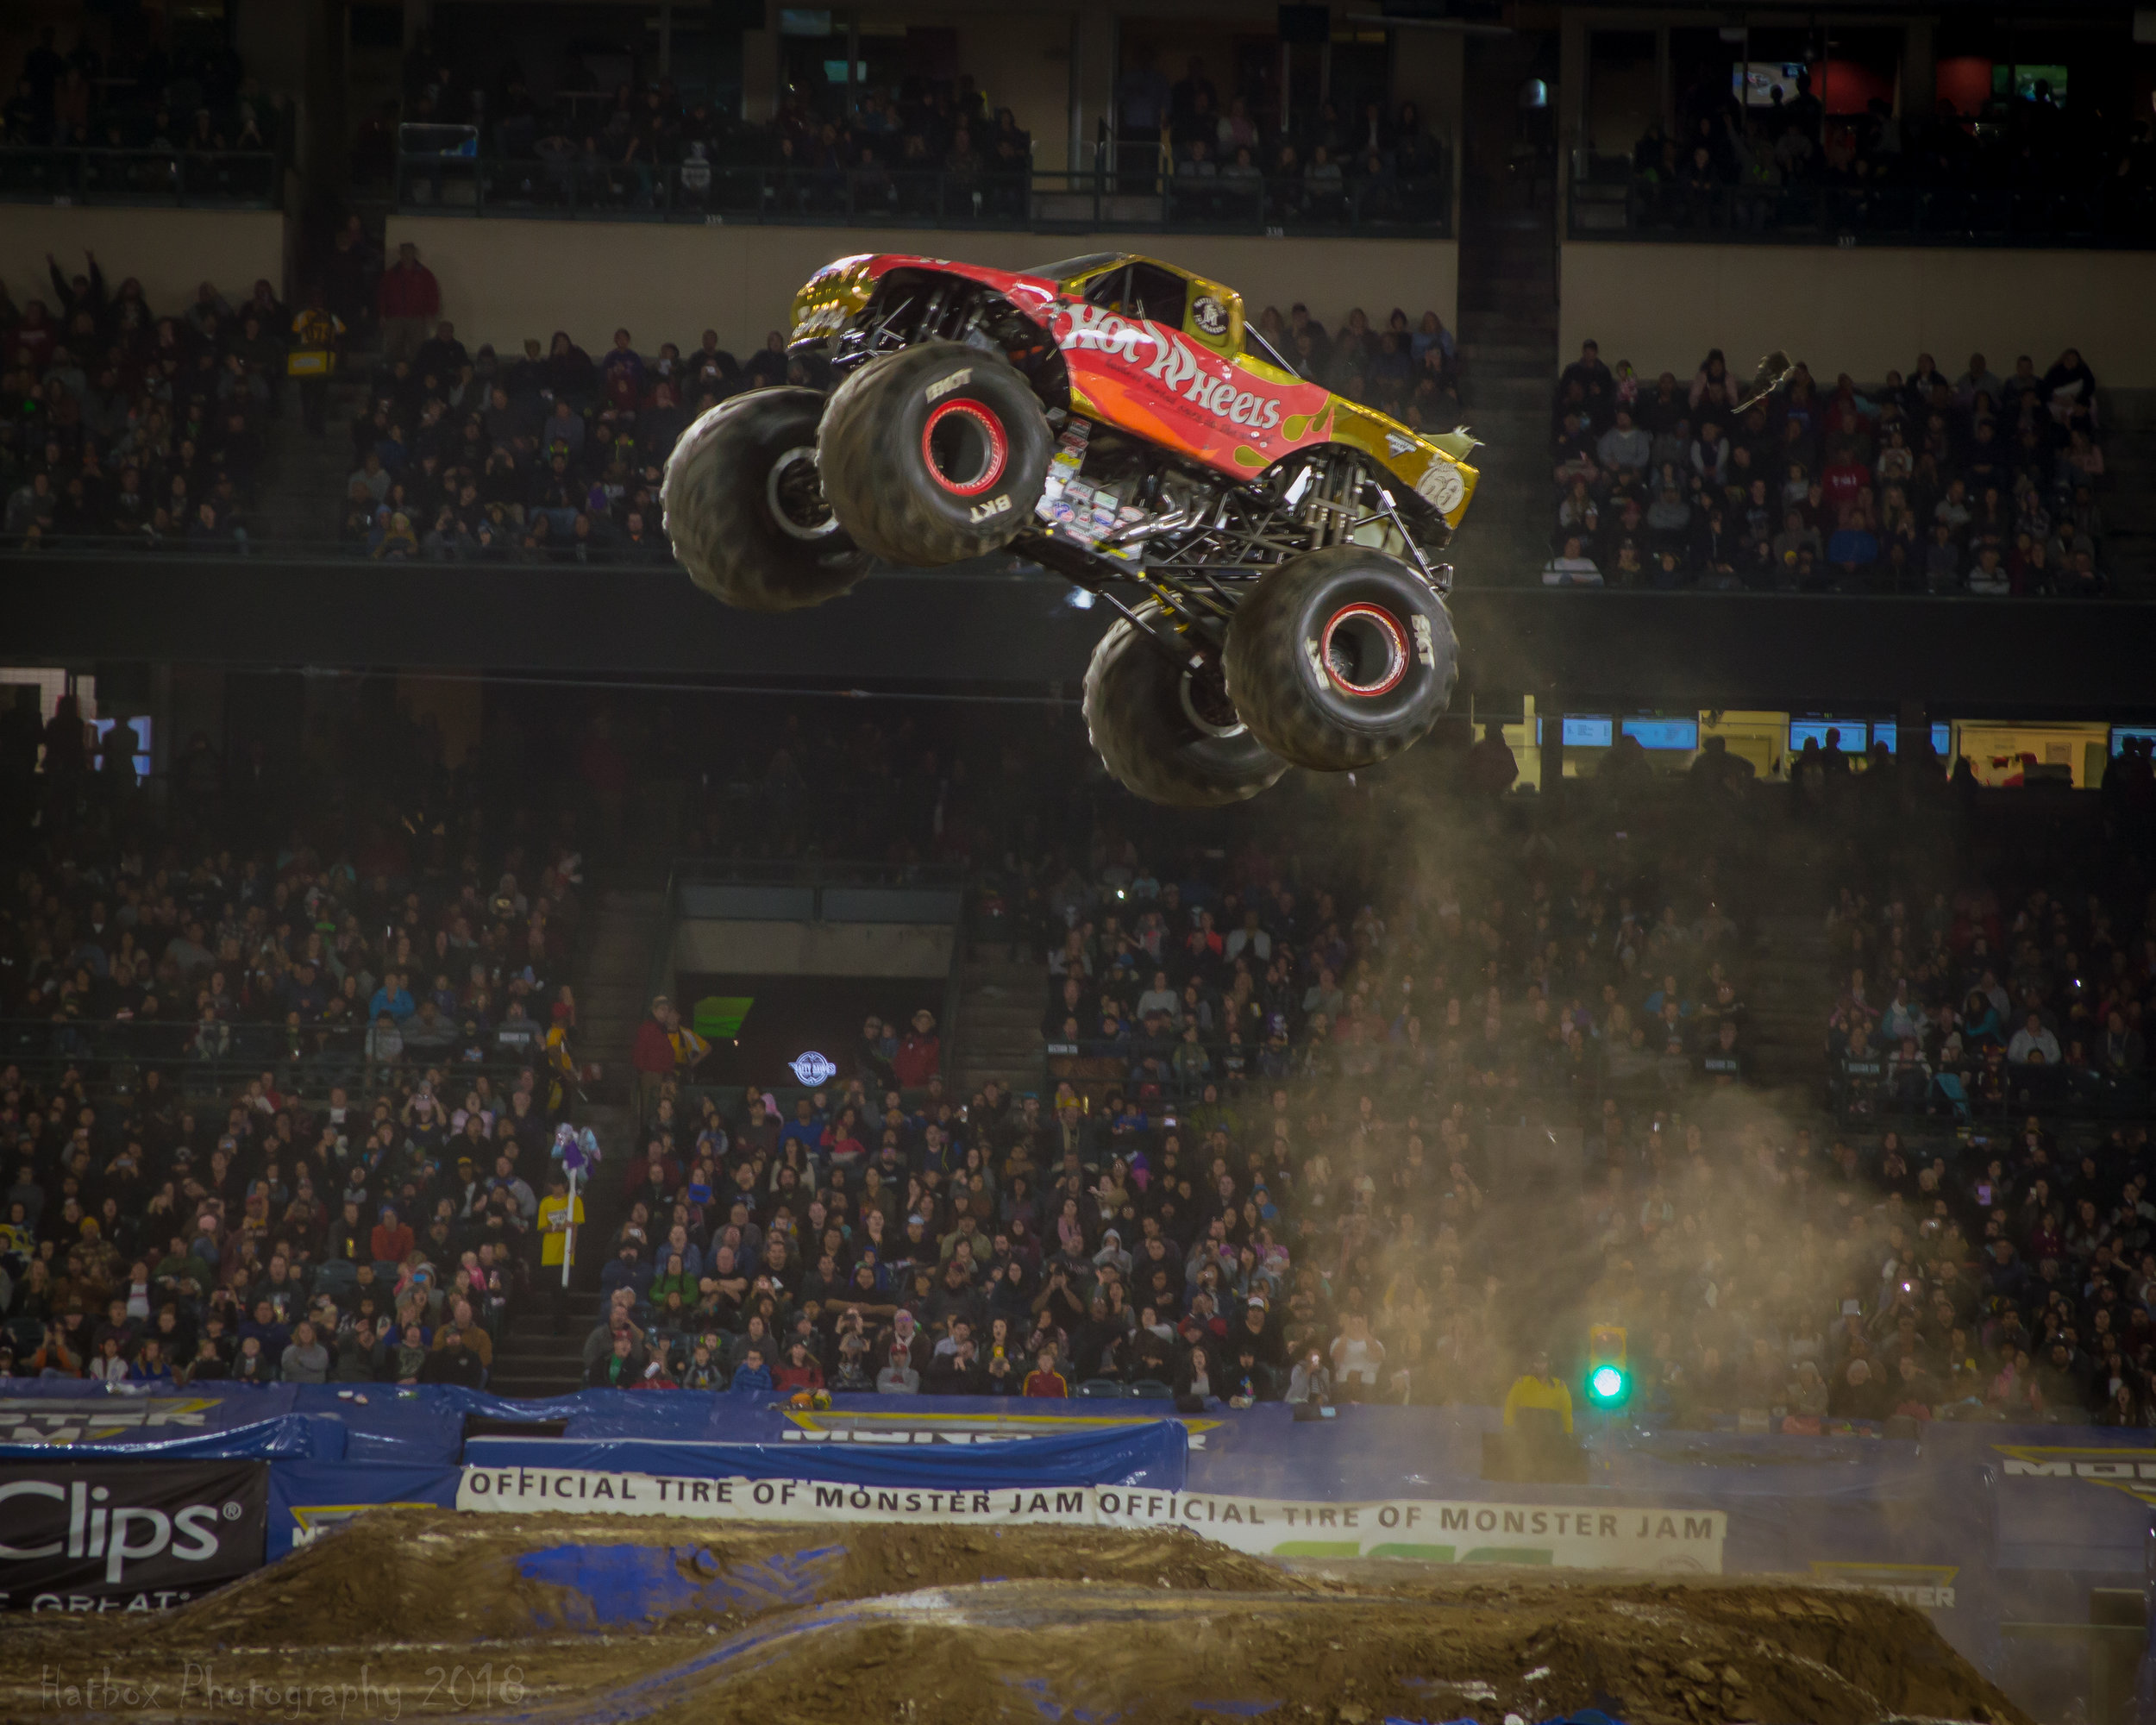 Team Hot Wheels Firestorm driven by Scott Beutow gets some of the biggest air in all of Monster Jam. His truck just seems to glide through the air like a bird in flight. He is always a threat to win freestyle no matter what arena or stadium he is in.